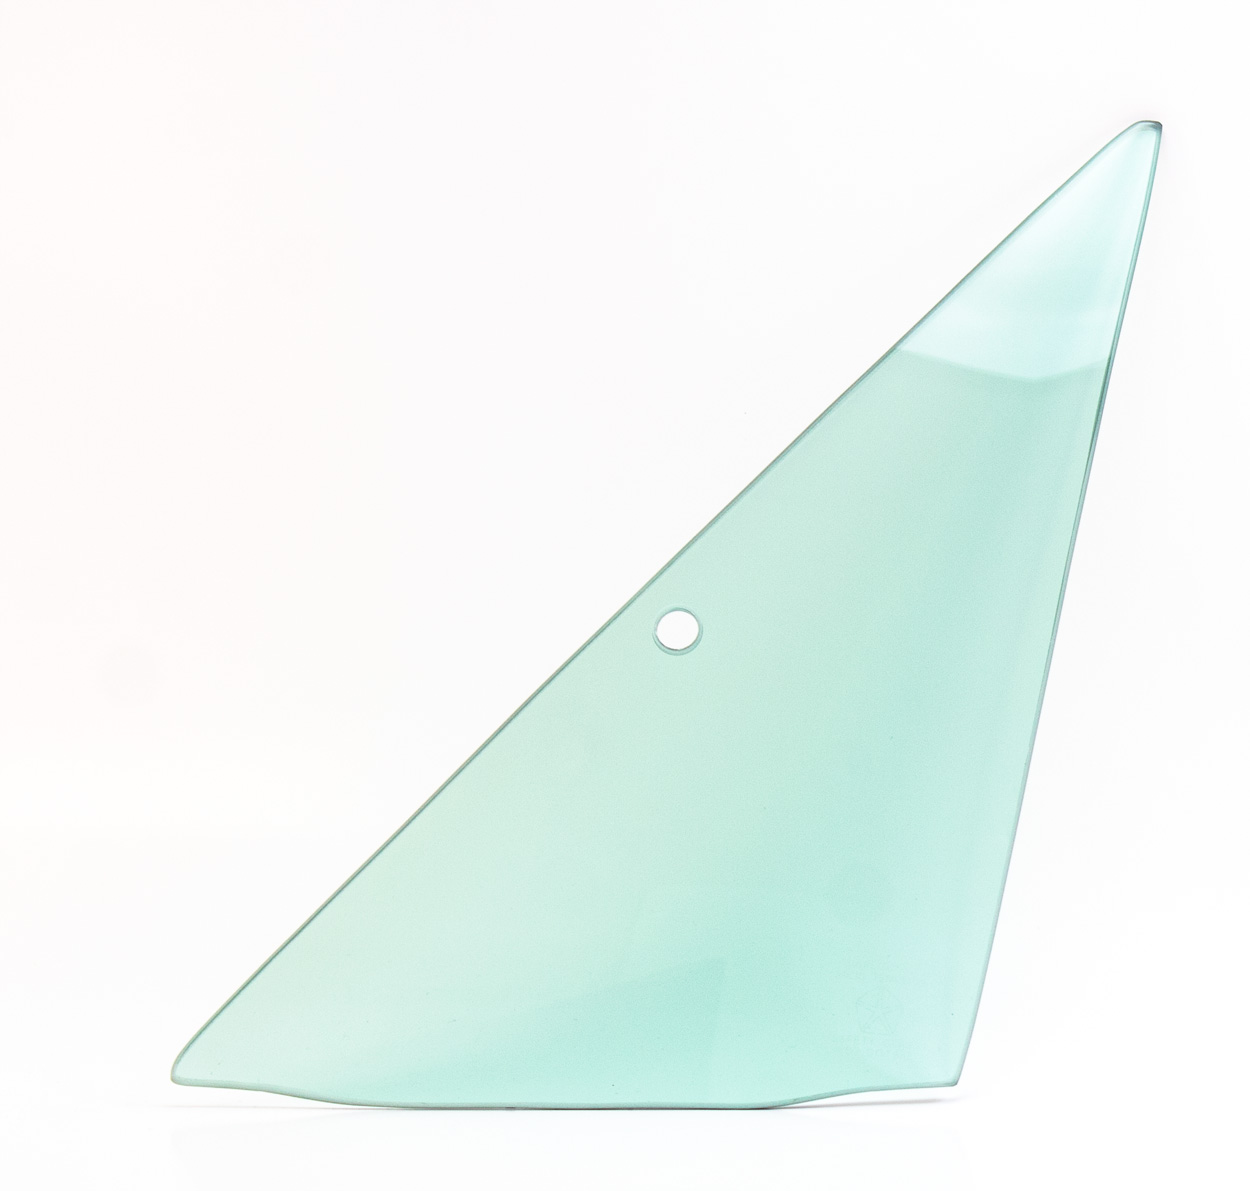 Vent Glass - Green Tint - LH - 66-67 Dodge Plymouth B-Body 2DR Hardtop, Convertible, 2/4DR Sedan & Wagon